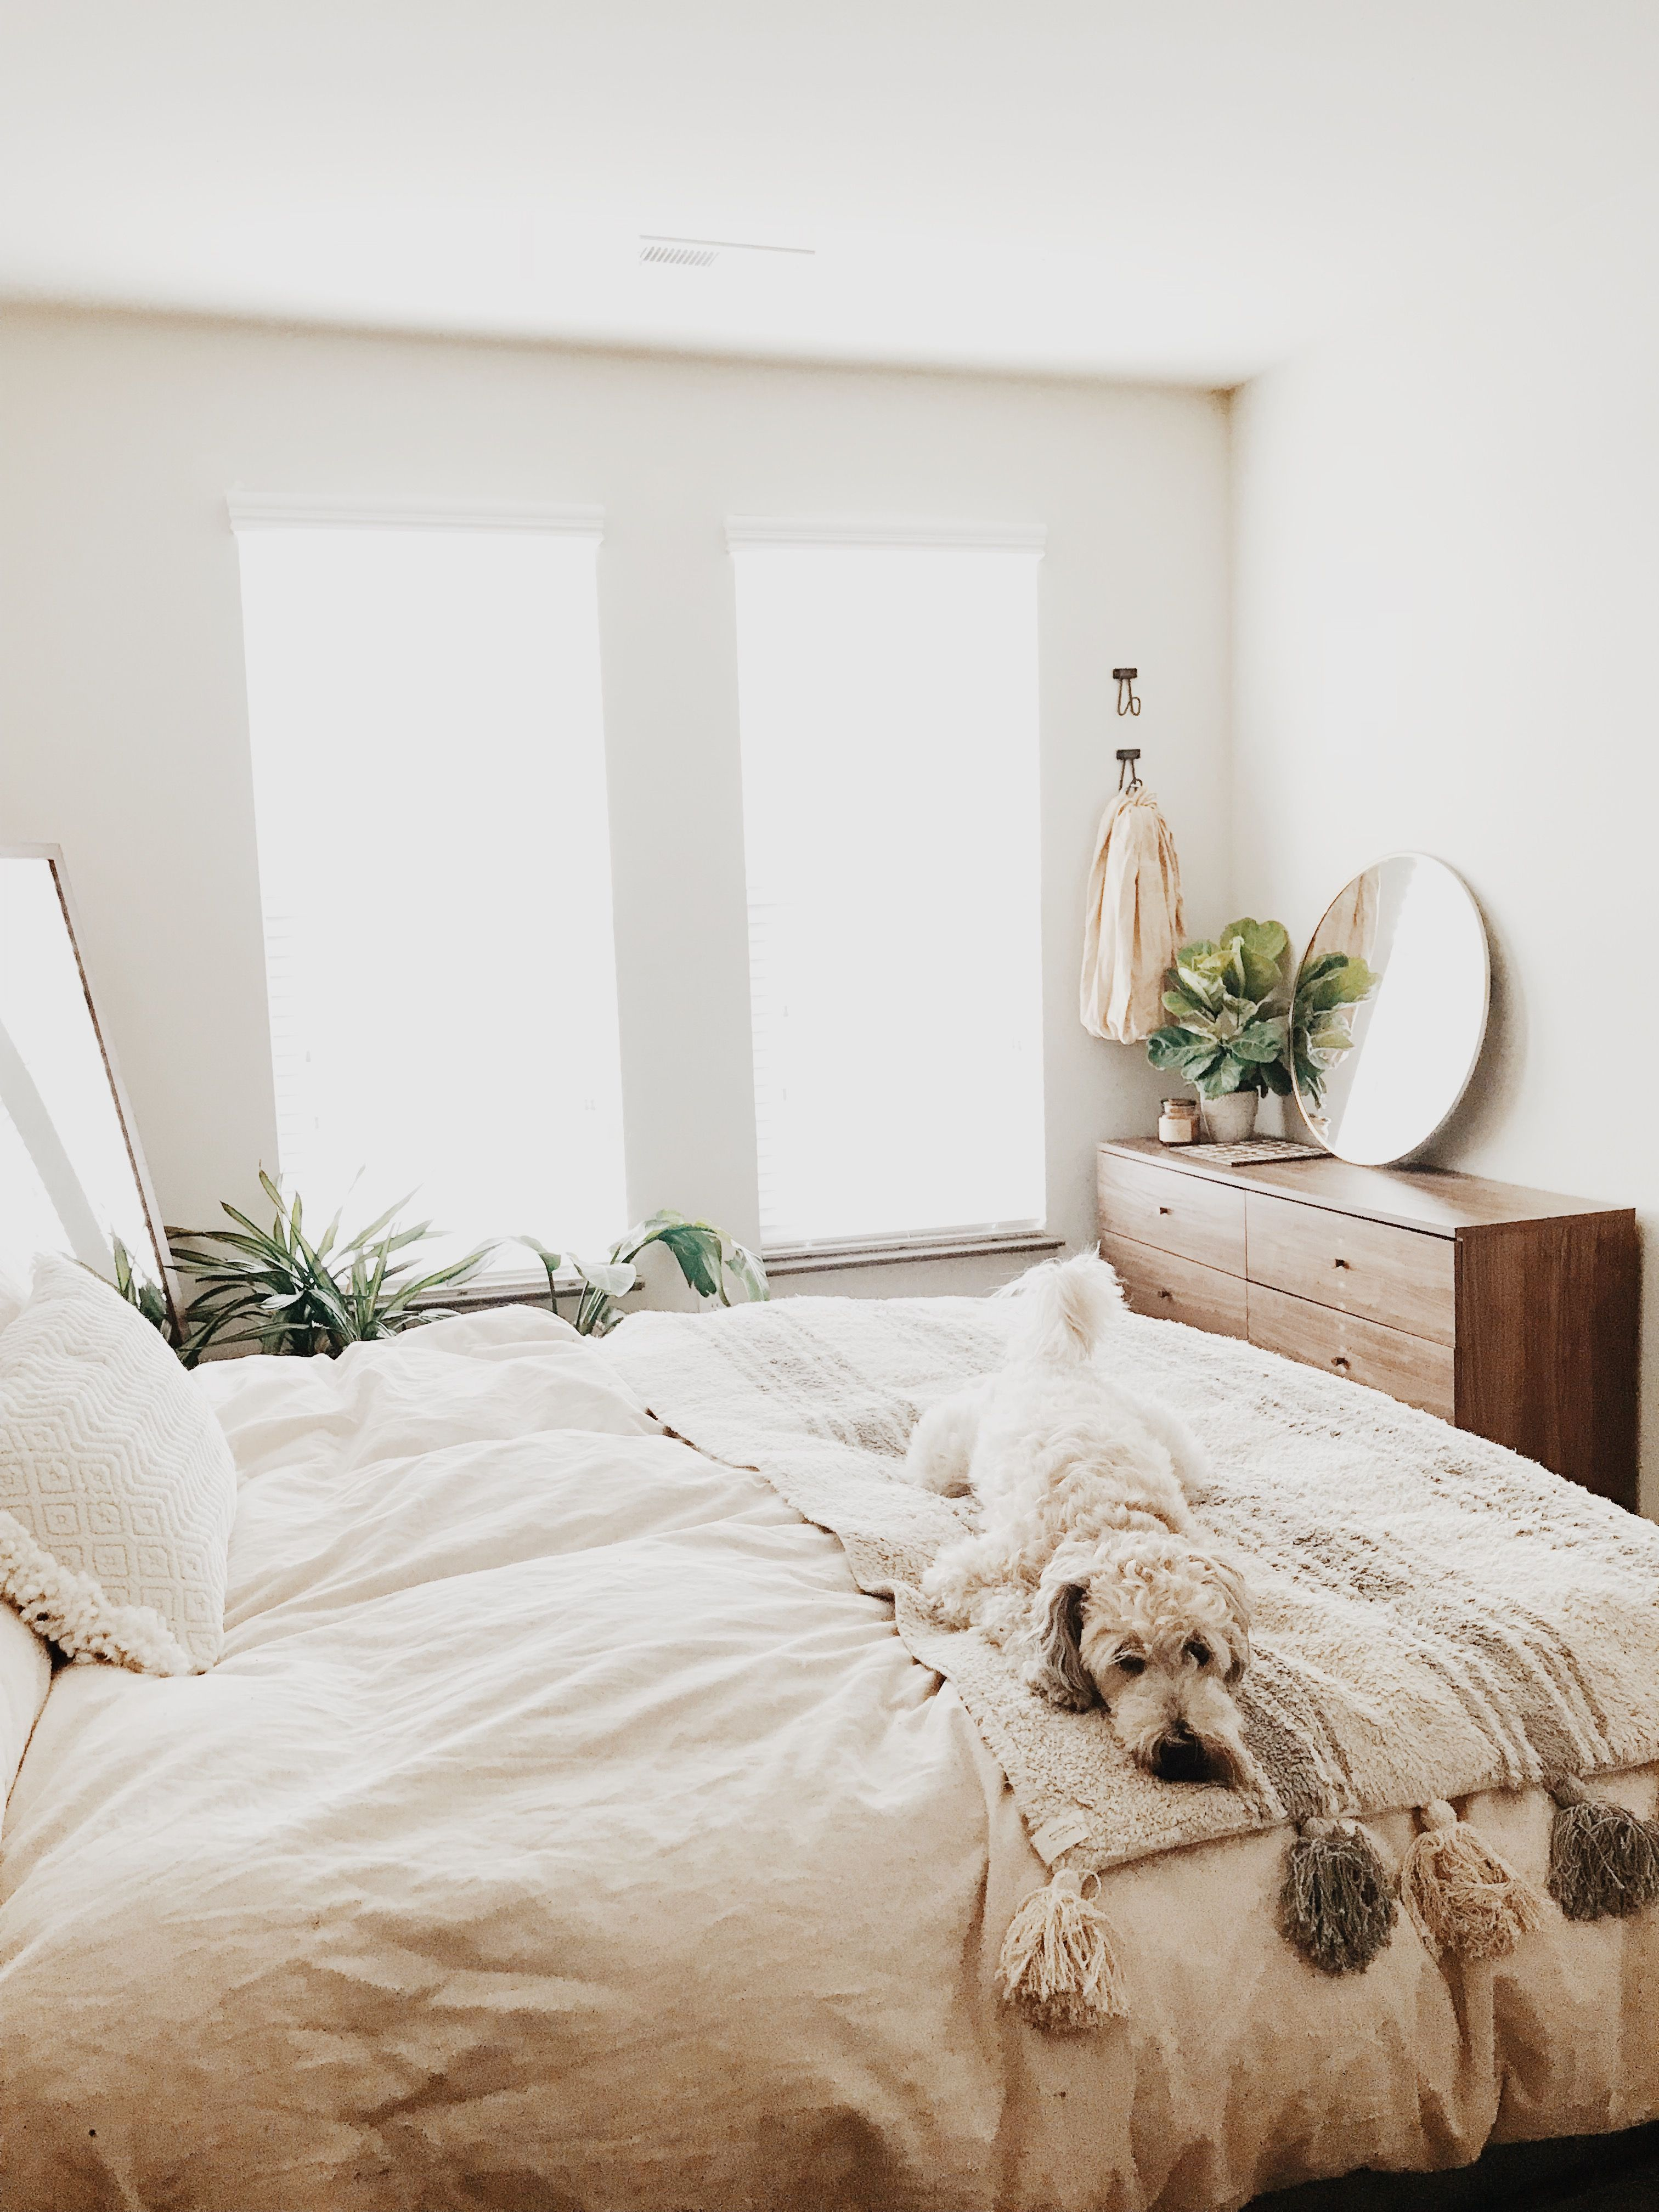 Neutral White Bedroom With Plants Wood Furniture And Lots Of Natural Light Plus A Cute Dog Bedroom Interior Home Decor Bedroom Bedroom Design